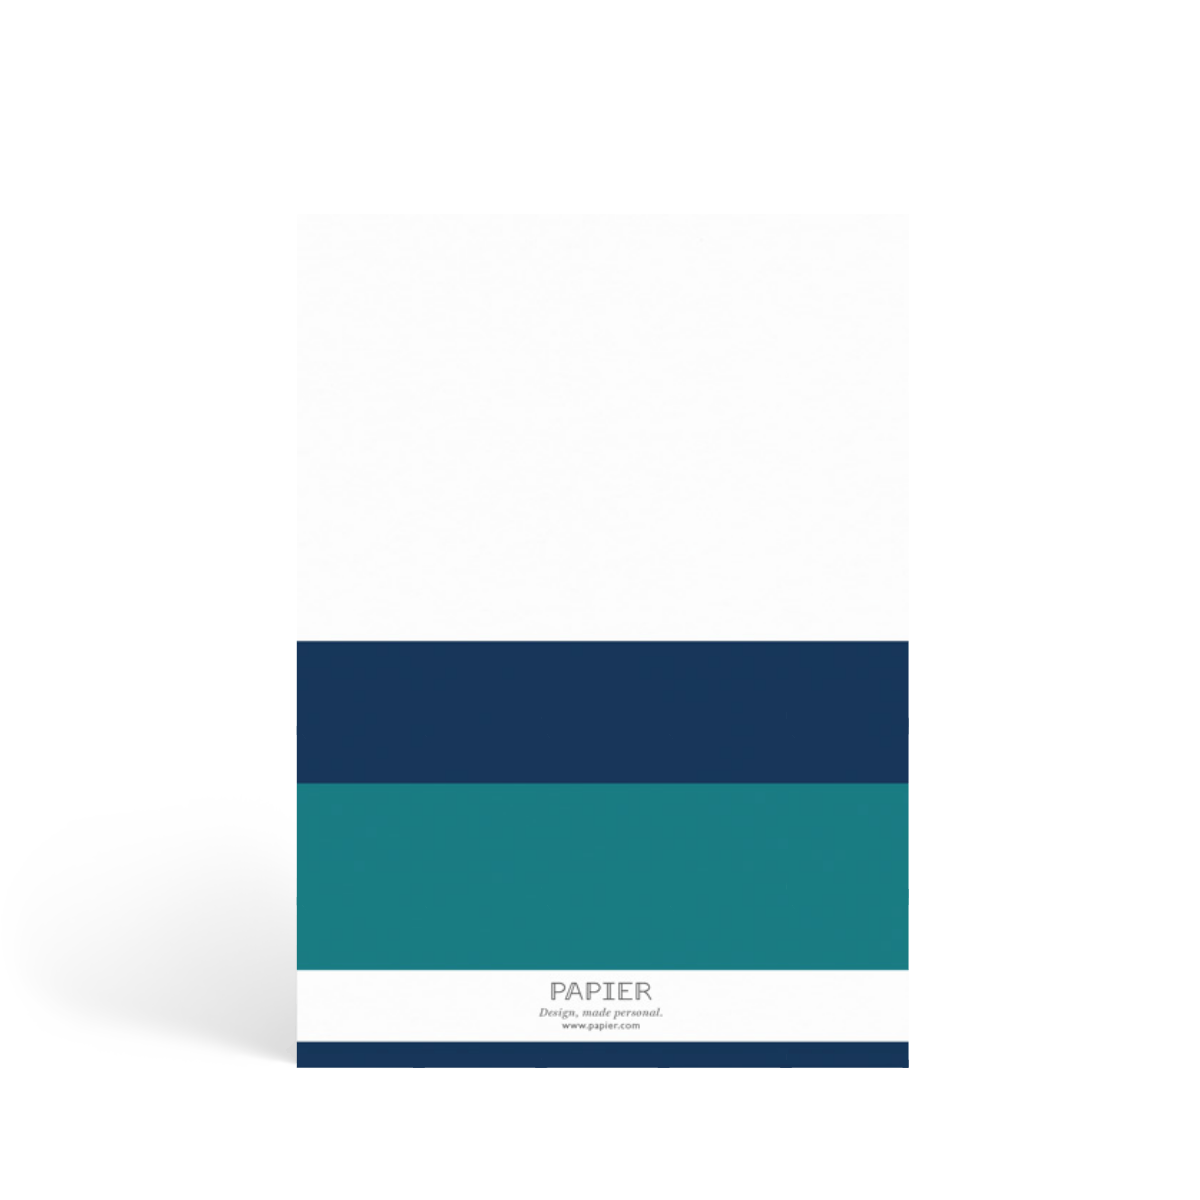 Https%3a%2f%2fwww.papier.com%2fproduct image%2f63813%2f5%2fstriped colourblock navy 14997 back 1548802935.png?ixlib=rb 1.1